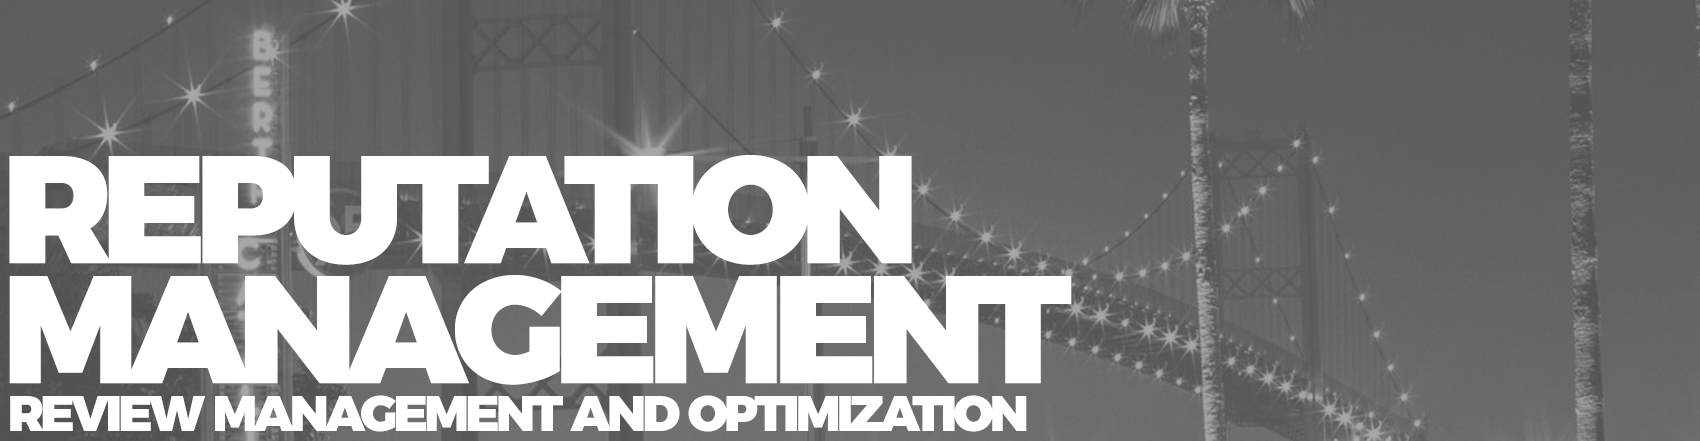 Reputation Management Header